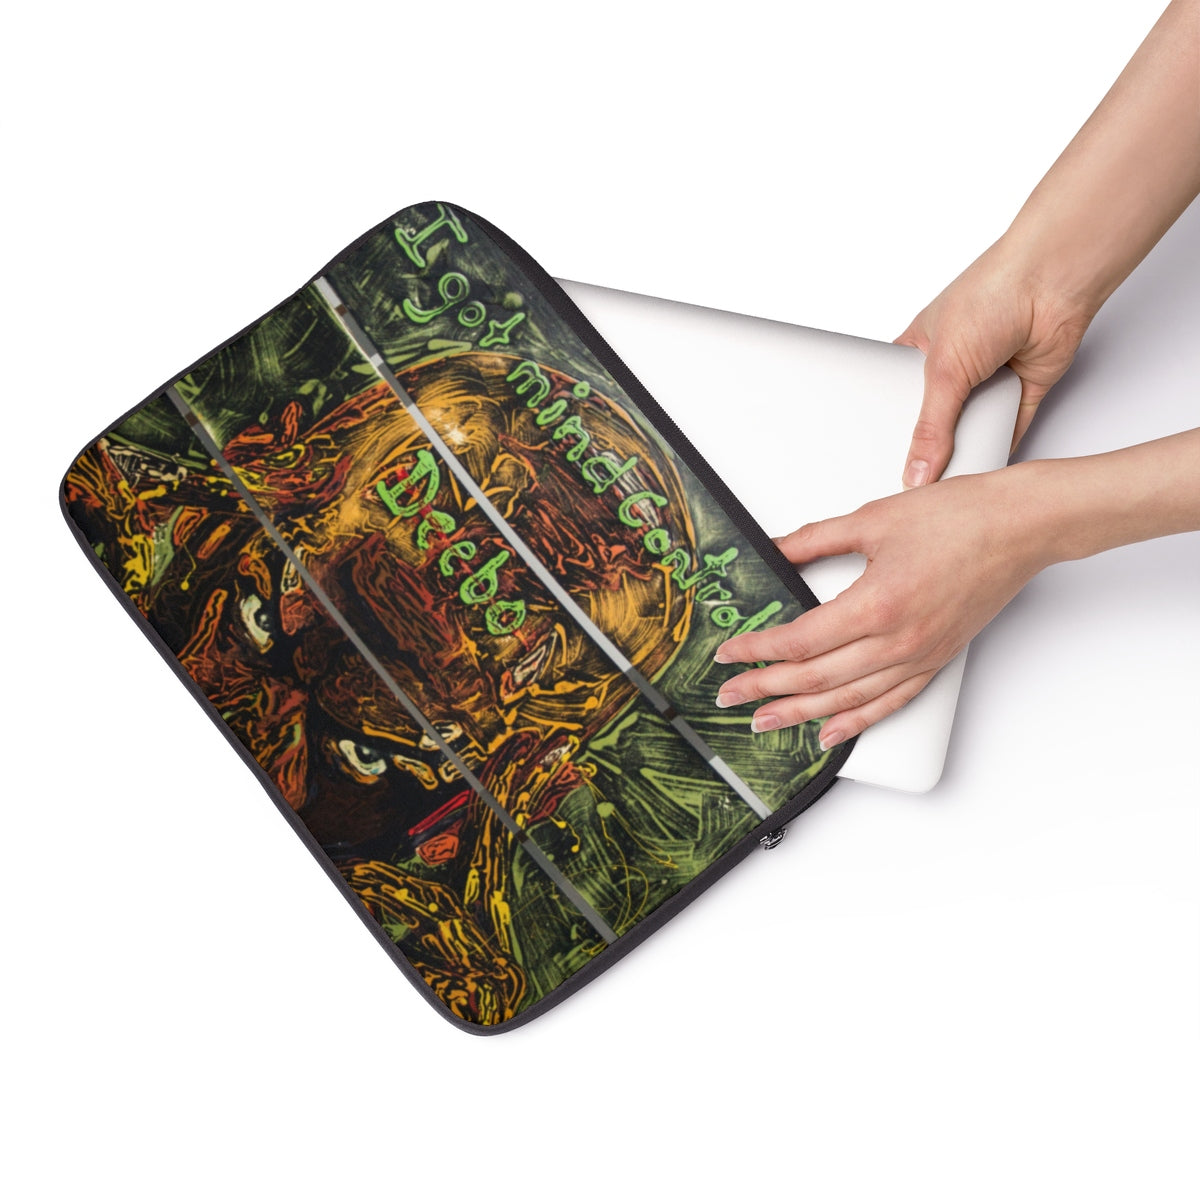 (Mind Control) Laptop Sleeve